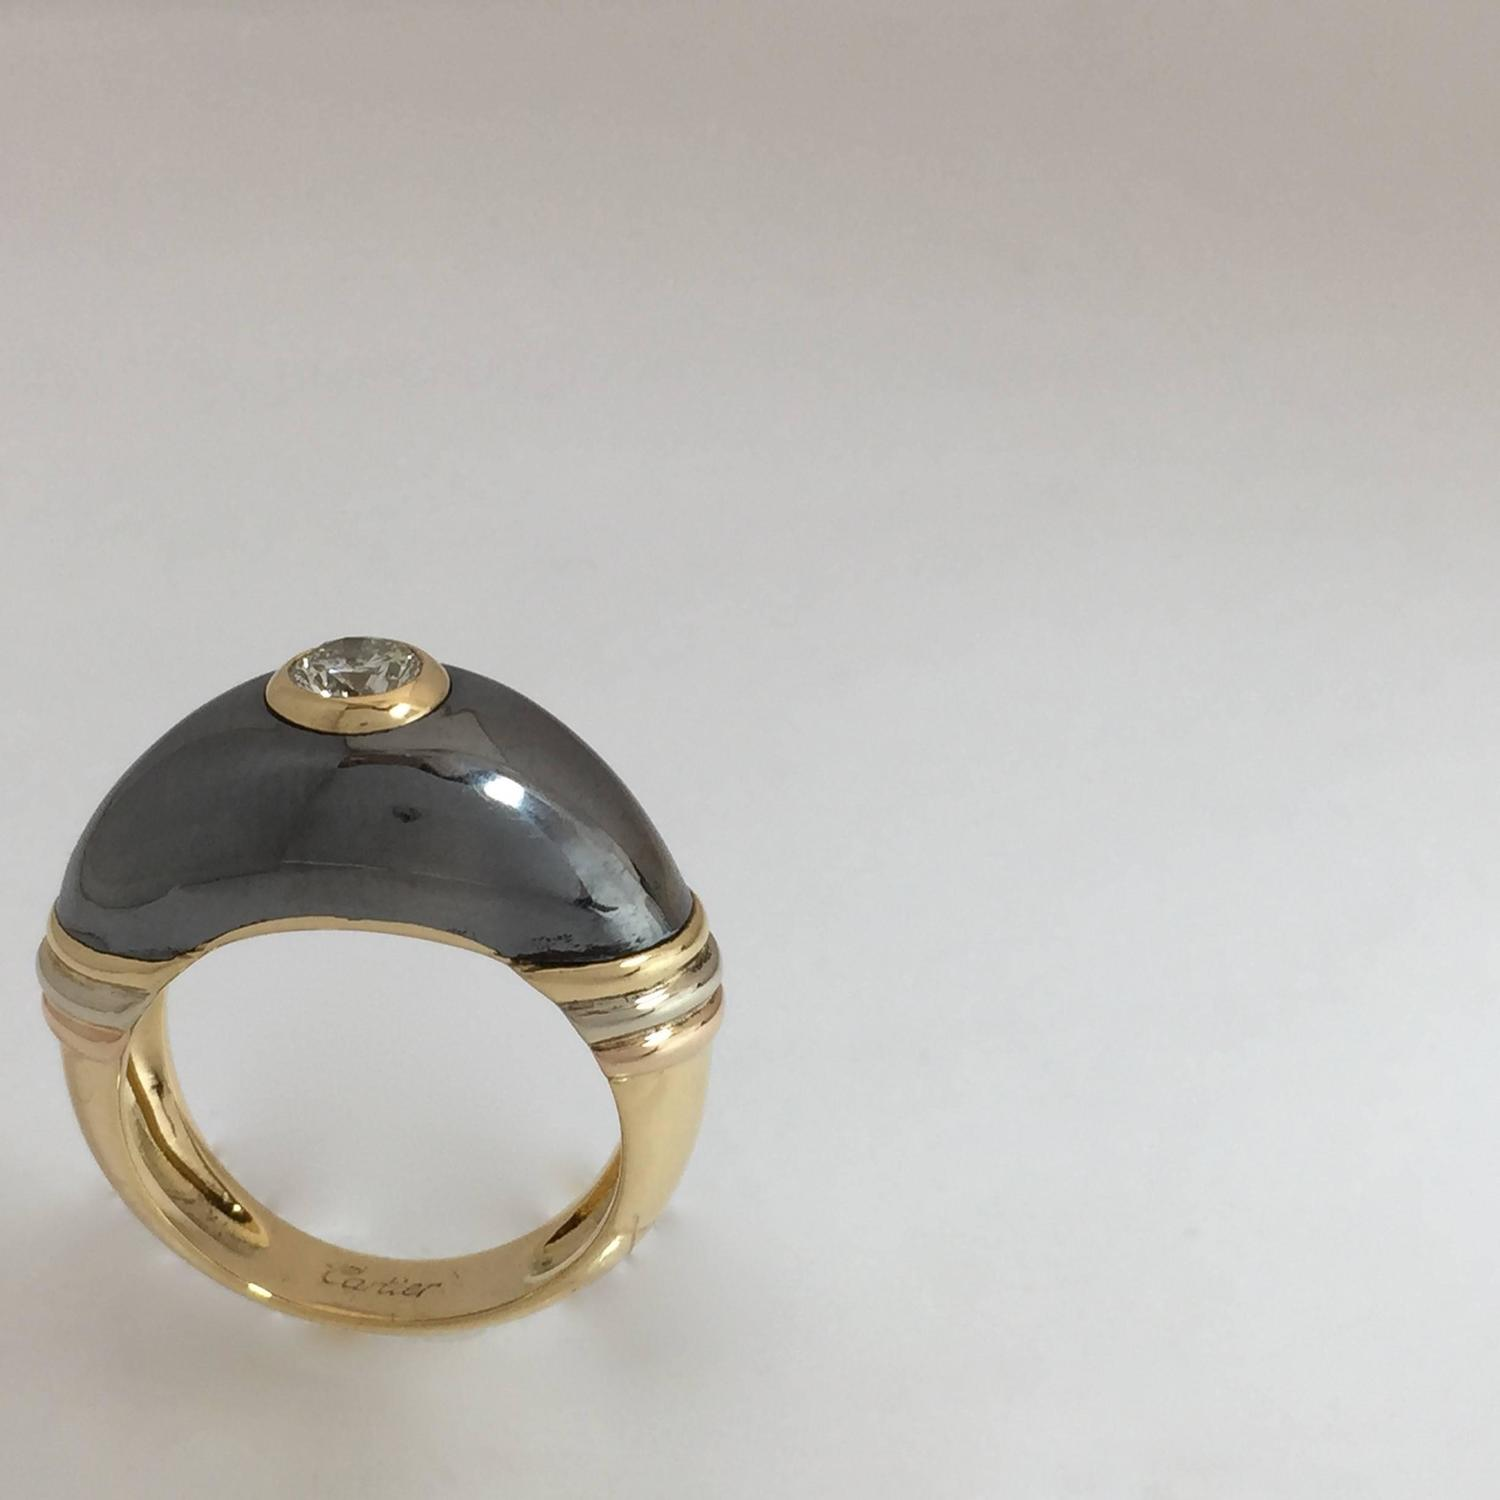 1980s cartier silverium tricolor gold ring at 1stdibs